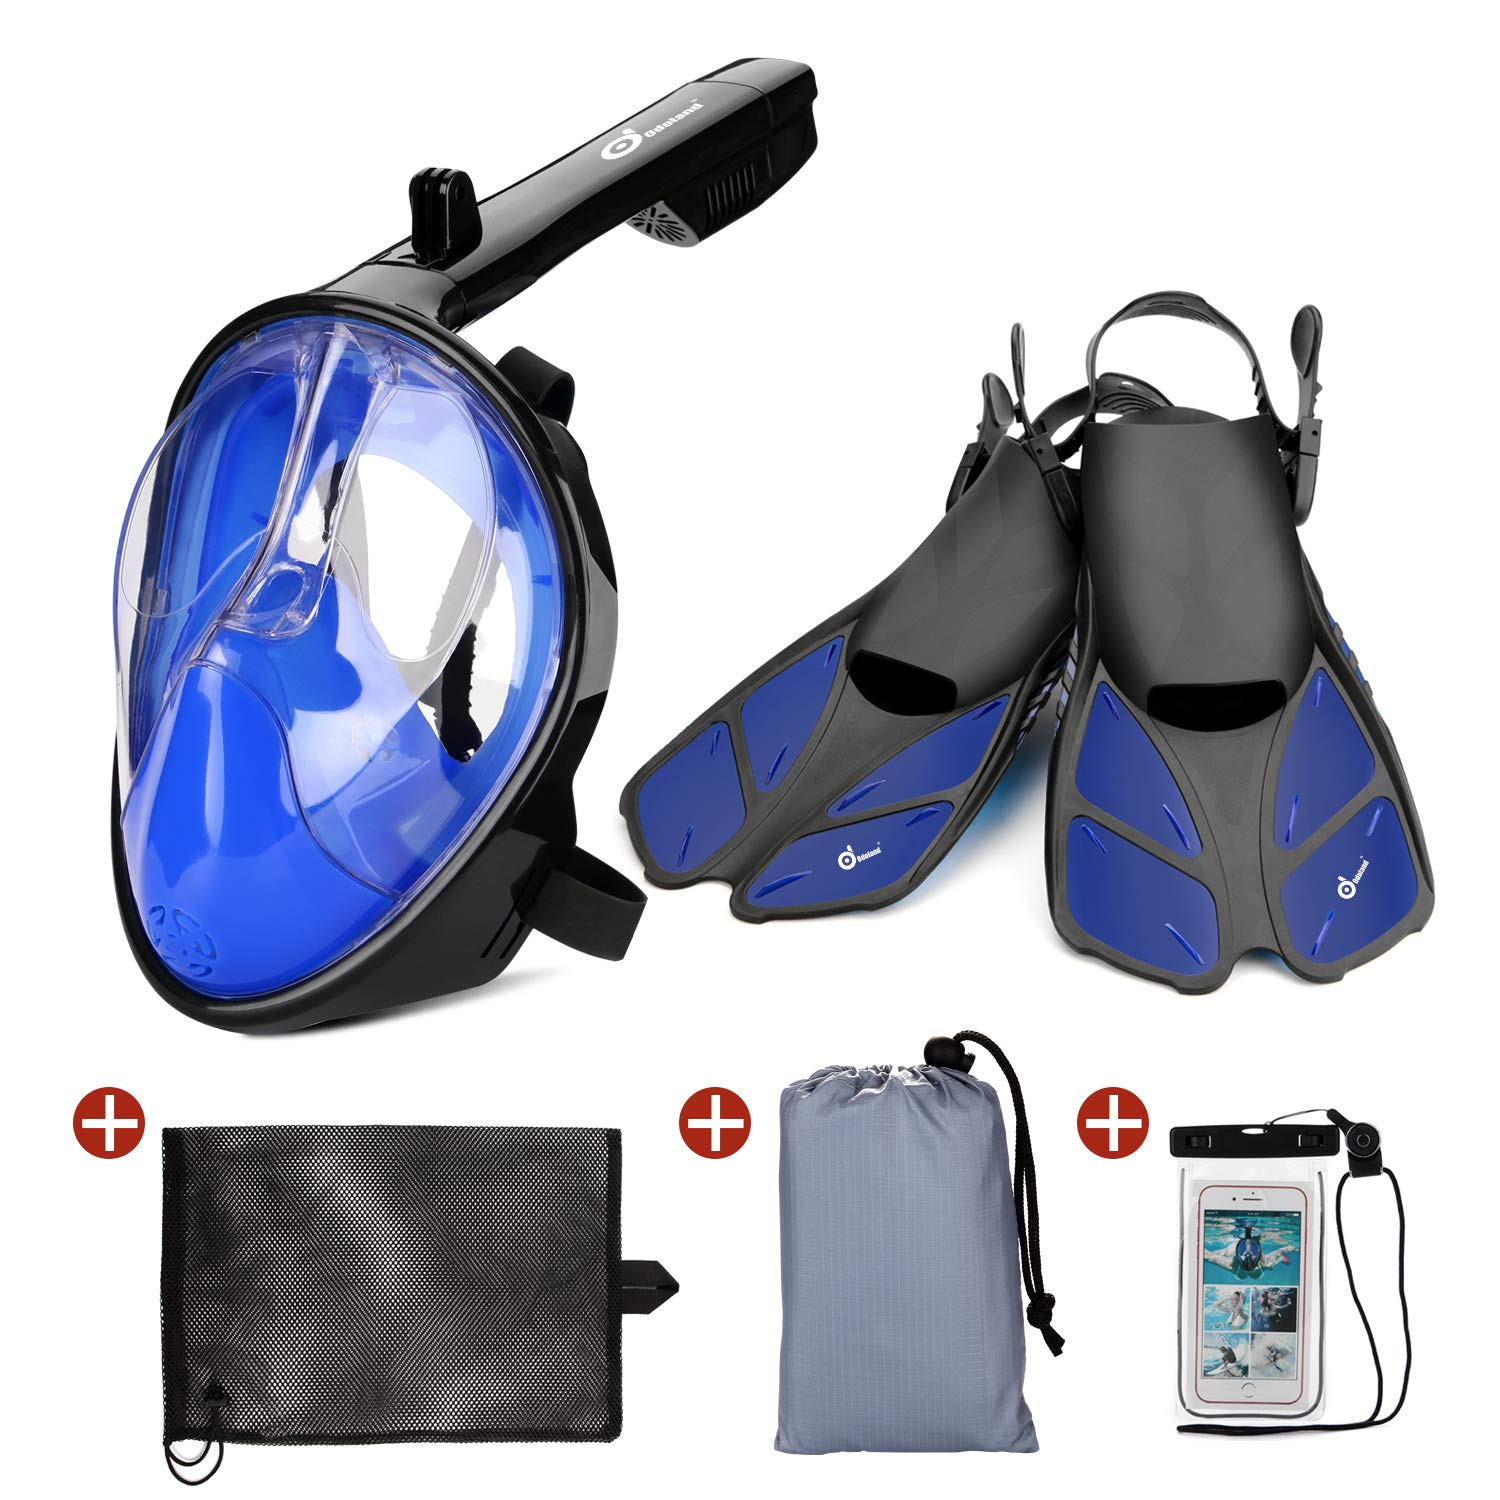 Odoland 5-in-1 Snorkeling Packages, Full Face Snorkel Mask with Adjustable Swim Fins and Lightweight Backpack and Waterproof Case - GoPro Compatible by Odoland